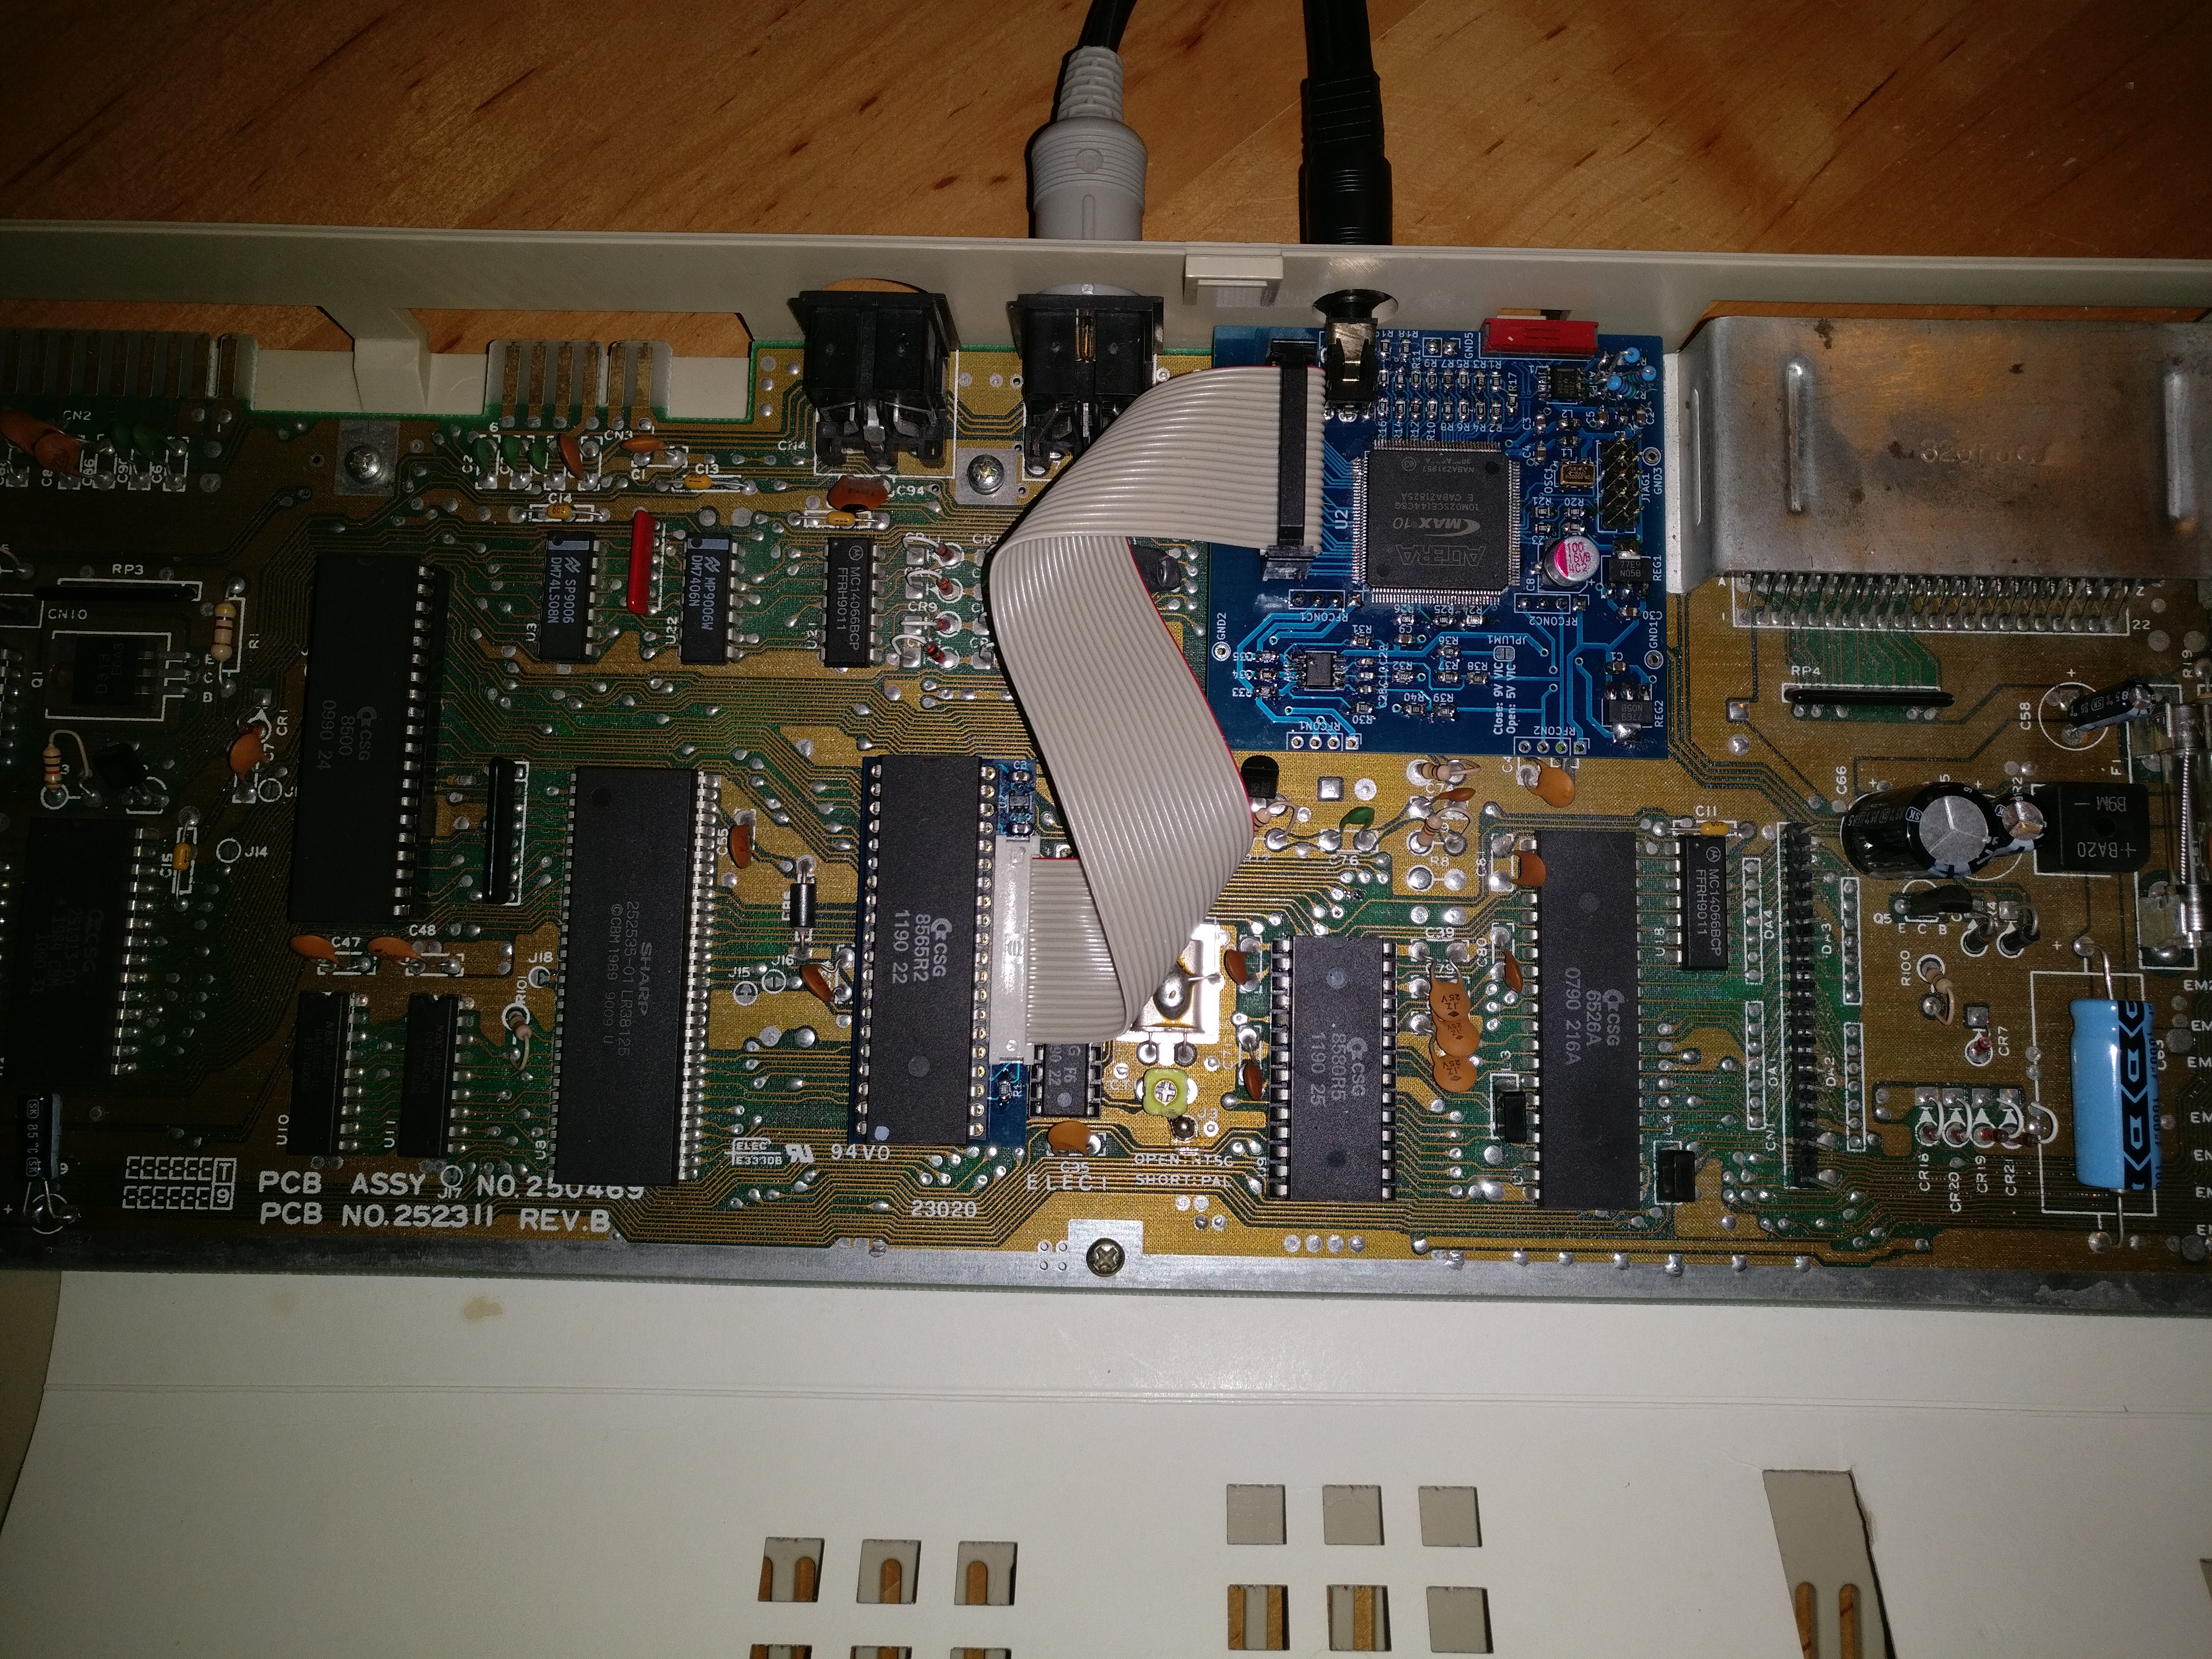 Component Video Enhancement for Commodore 64